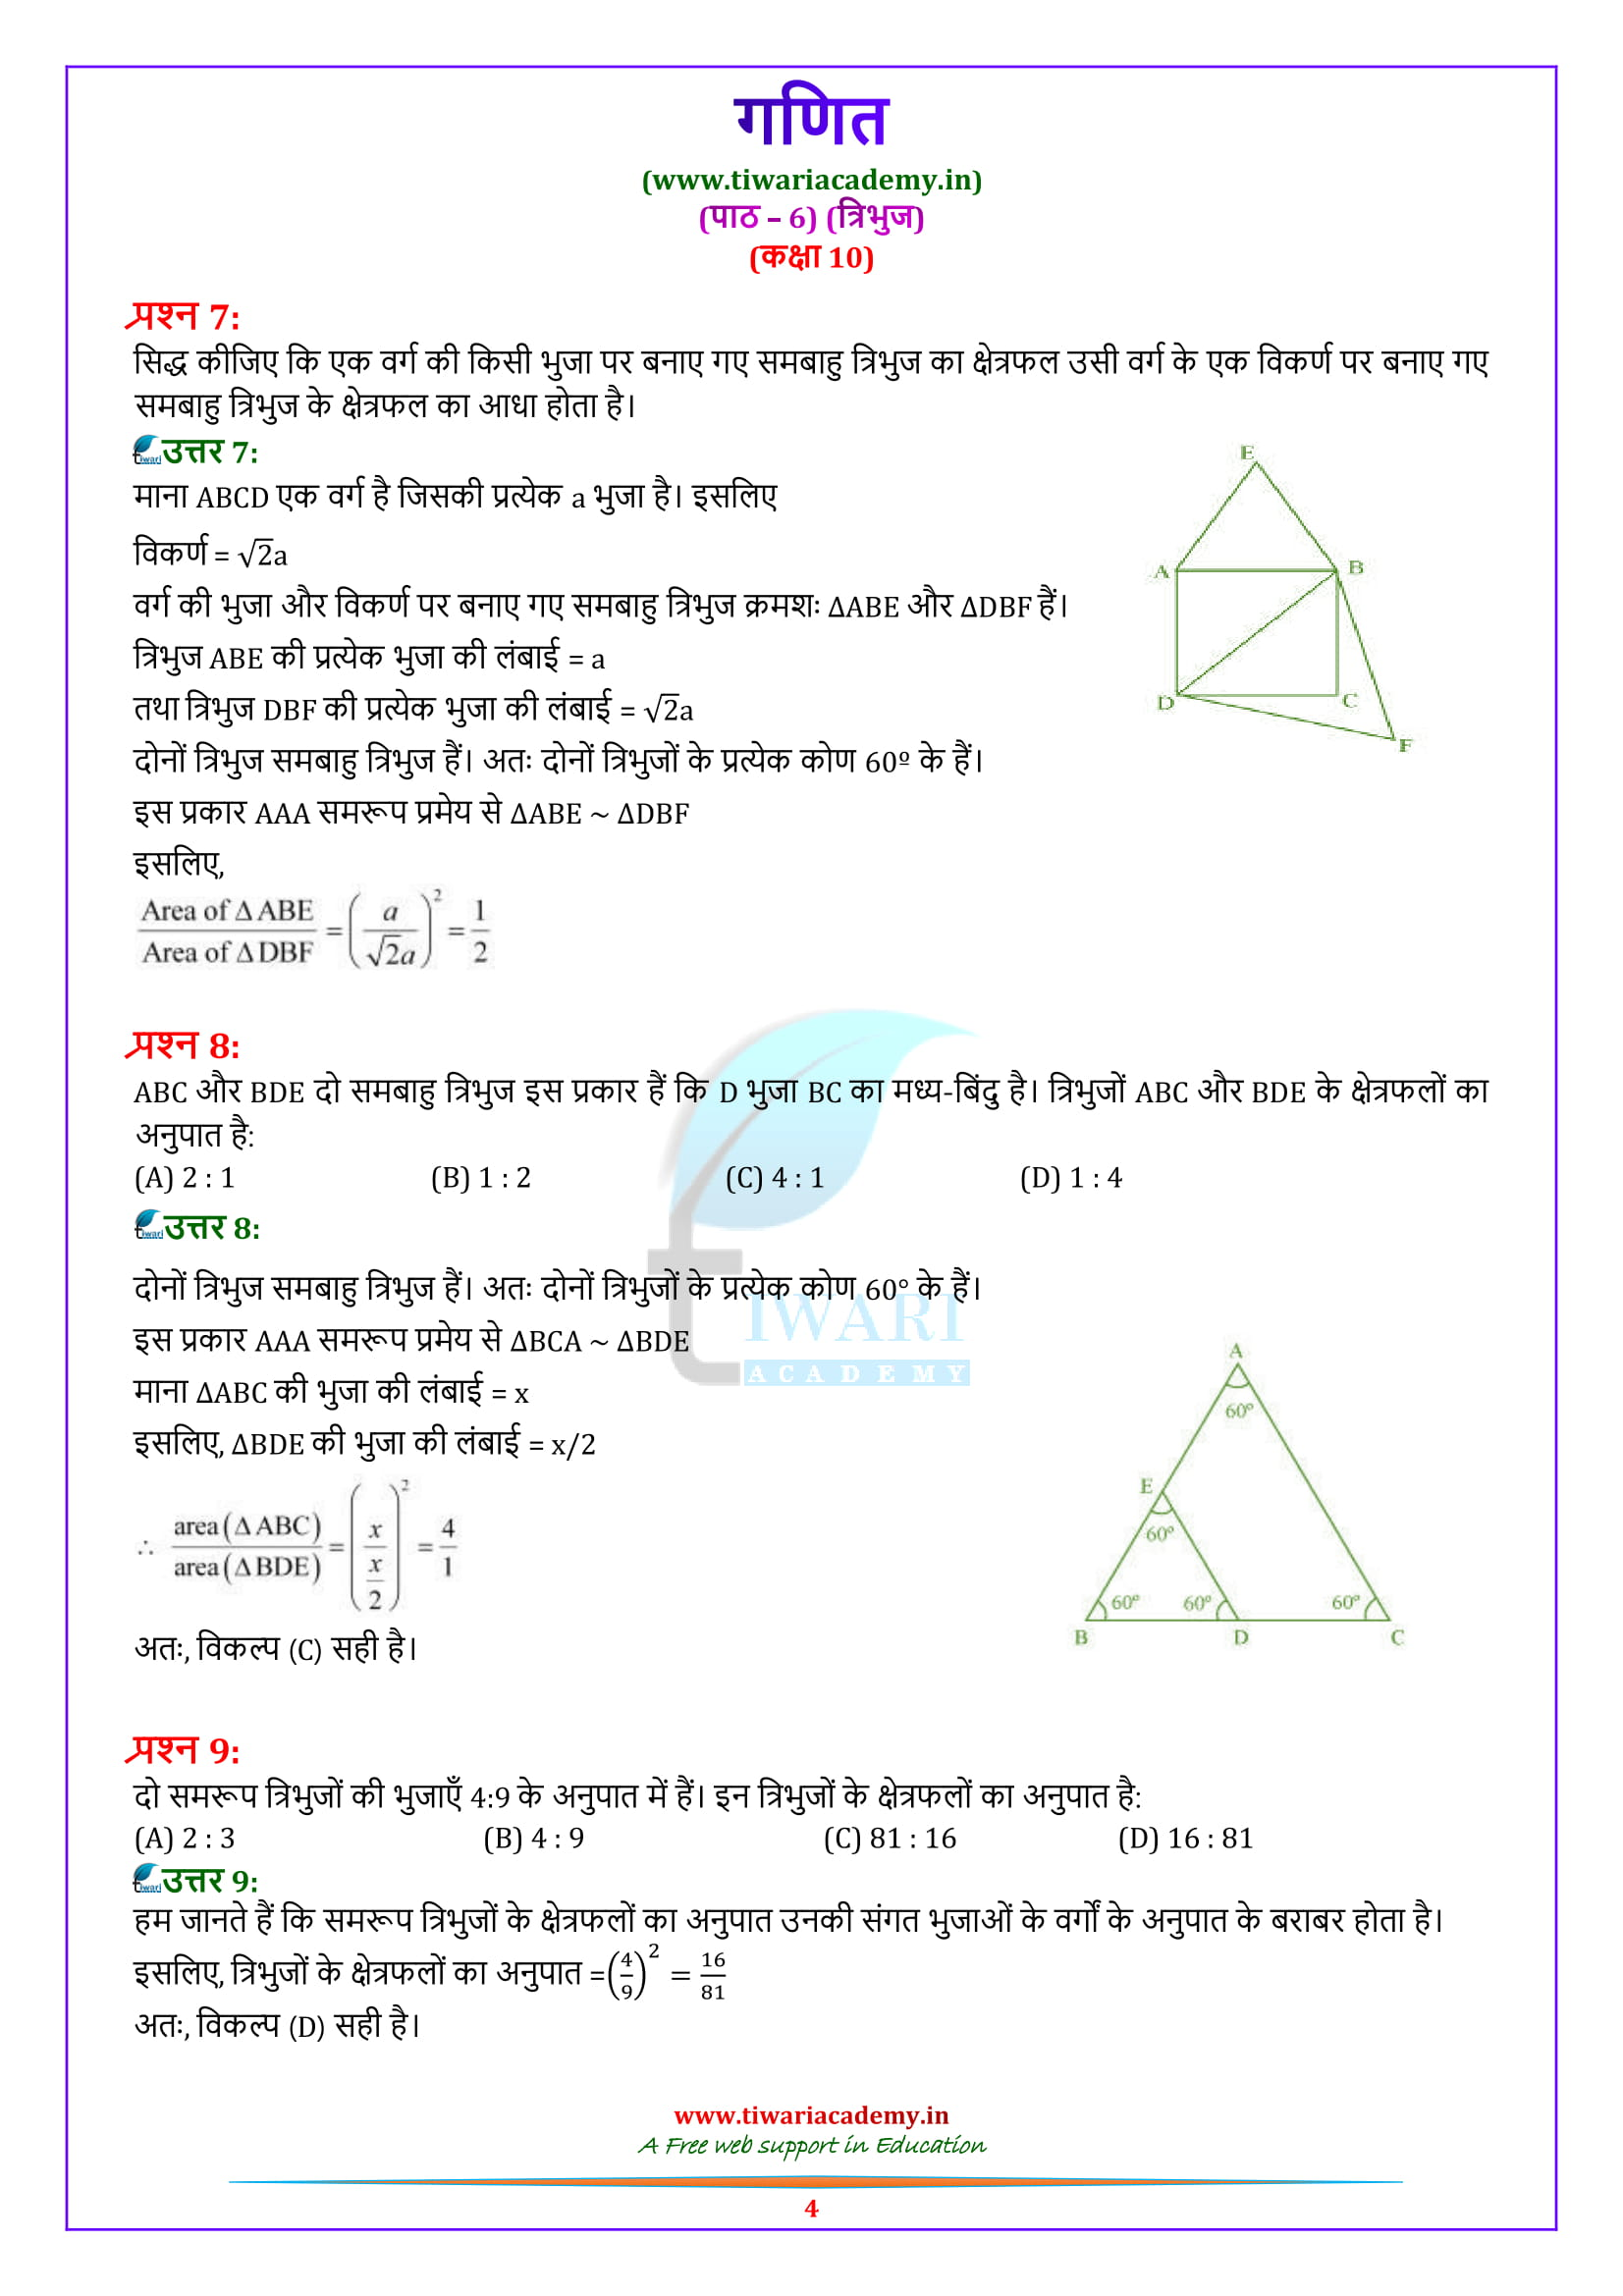 10 Maths exercsie 6.4 all question in hindi